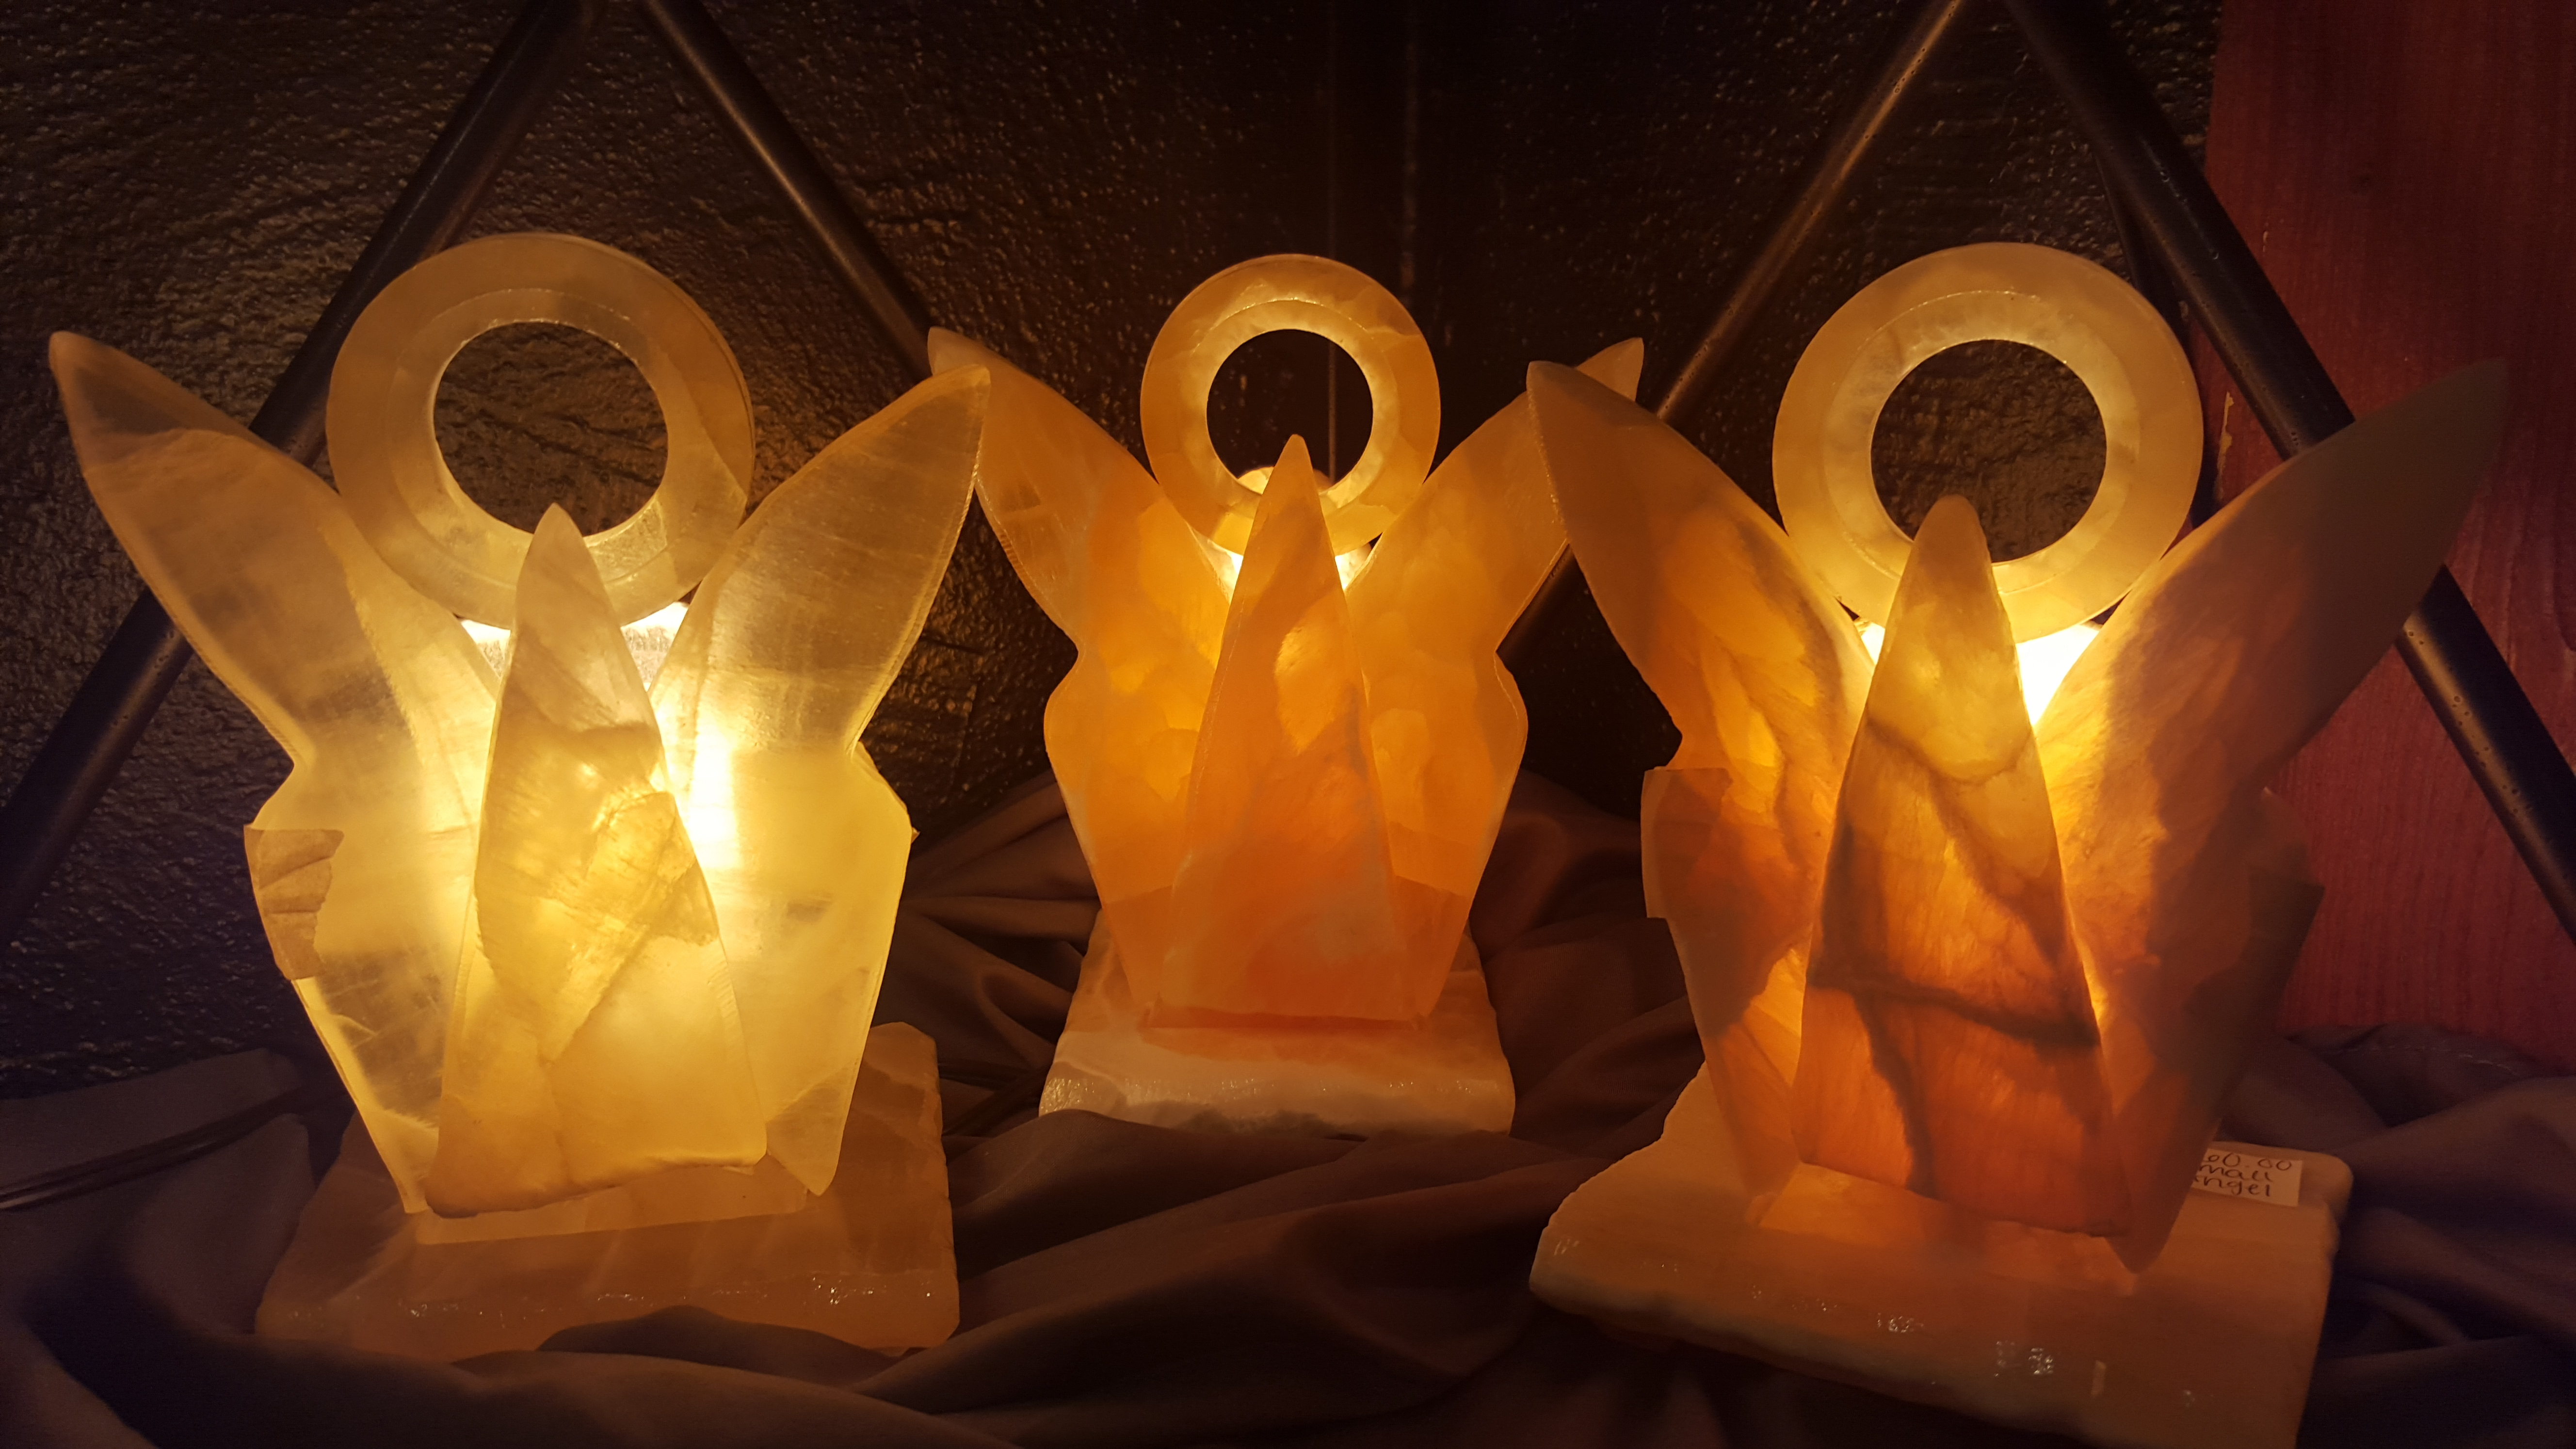 """6"""" Honeycomb calcite angels with attached electric light base - makes great night light!"""